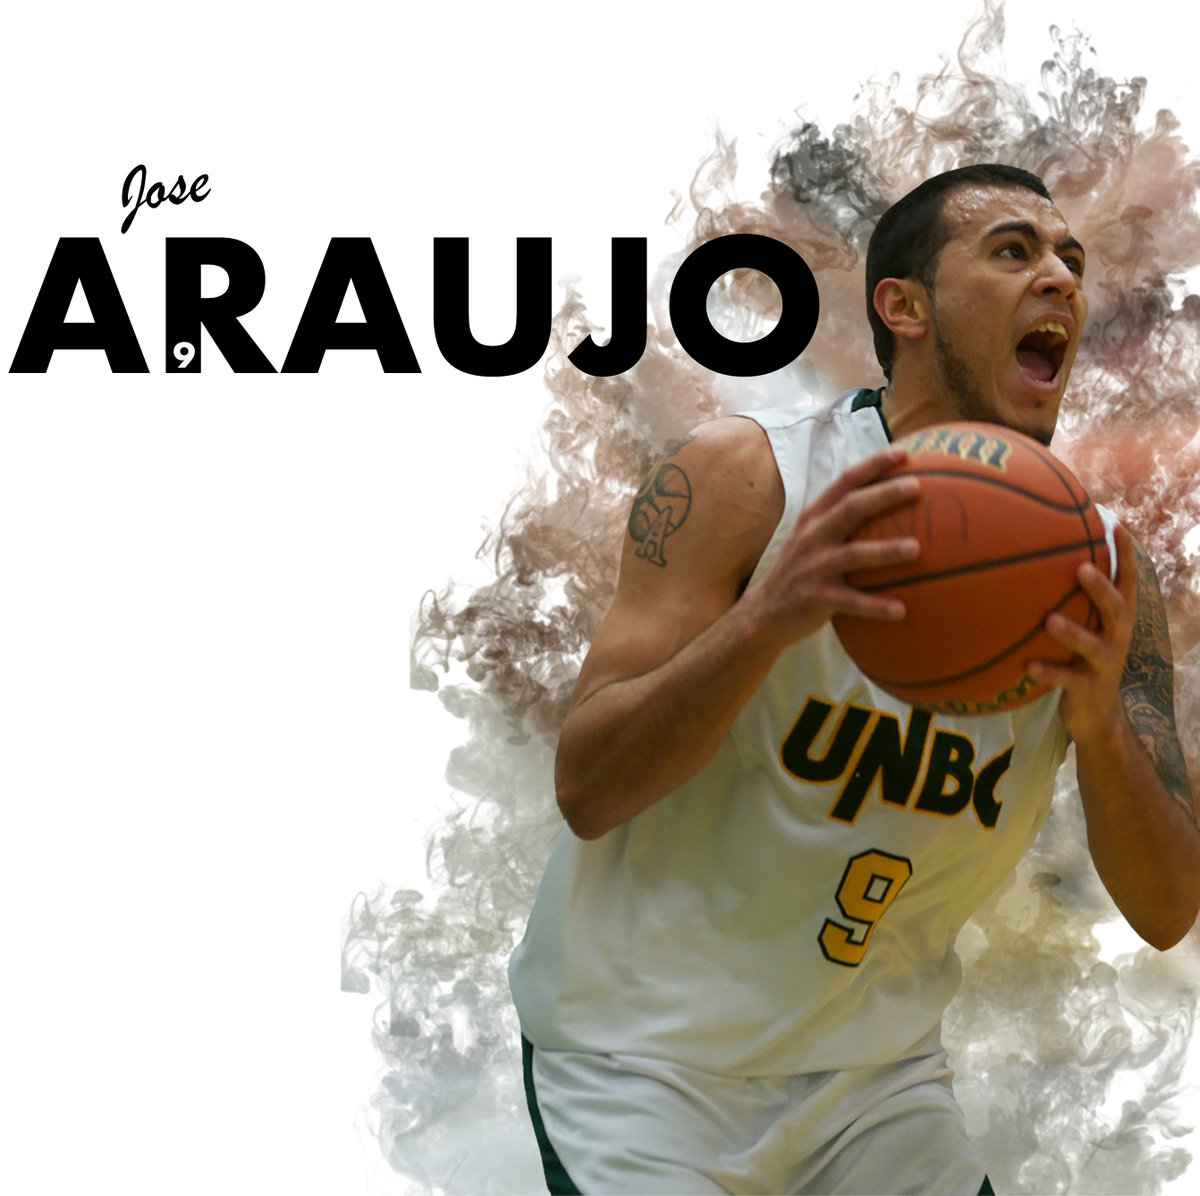 Another great TWolf throwback, looking at the incredible @UNBC career of Jose Araujo! A 3-year TWolf, Jose earned two @pacwestbc Championships, two PacWest All-Star nods, and a @CCAAsportsACSC National Championship in 2010! Thanks for your contributions to @UNBCBasketball, Jose! pic.twitter.com/ORQ0ekvhM2